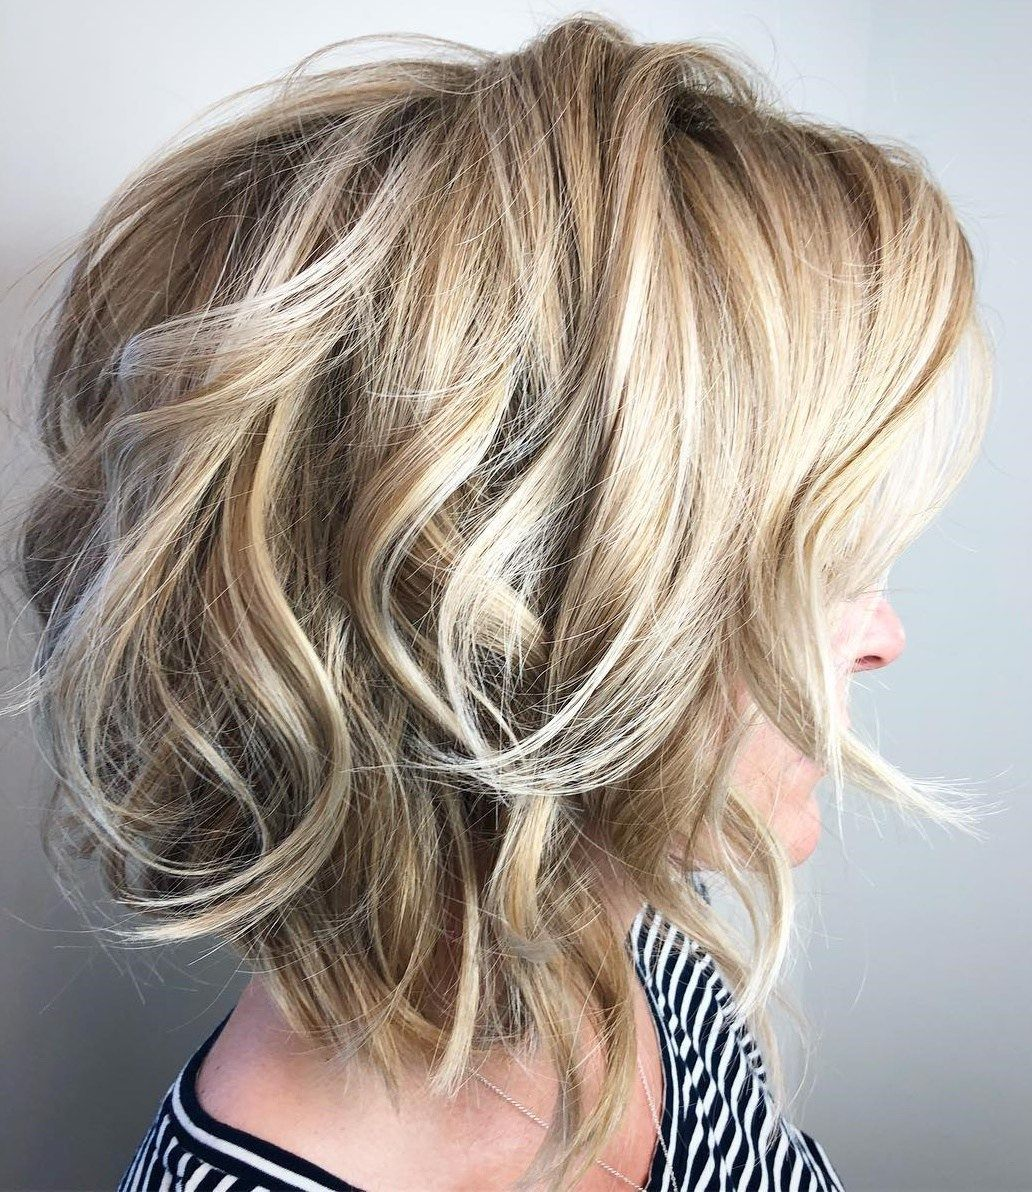 Caramel hair color boy  most magnetizing hairstyles for thick wavy hair  hair